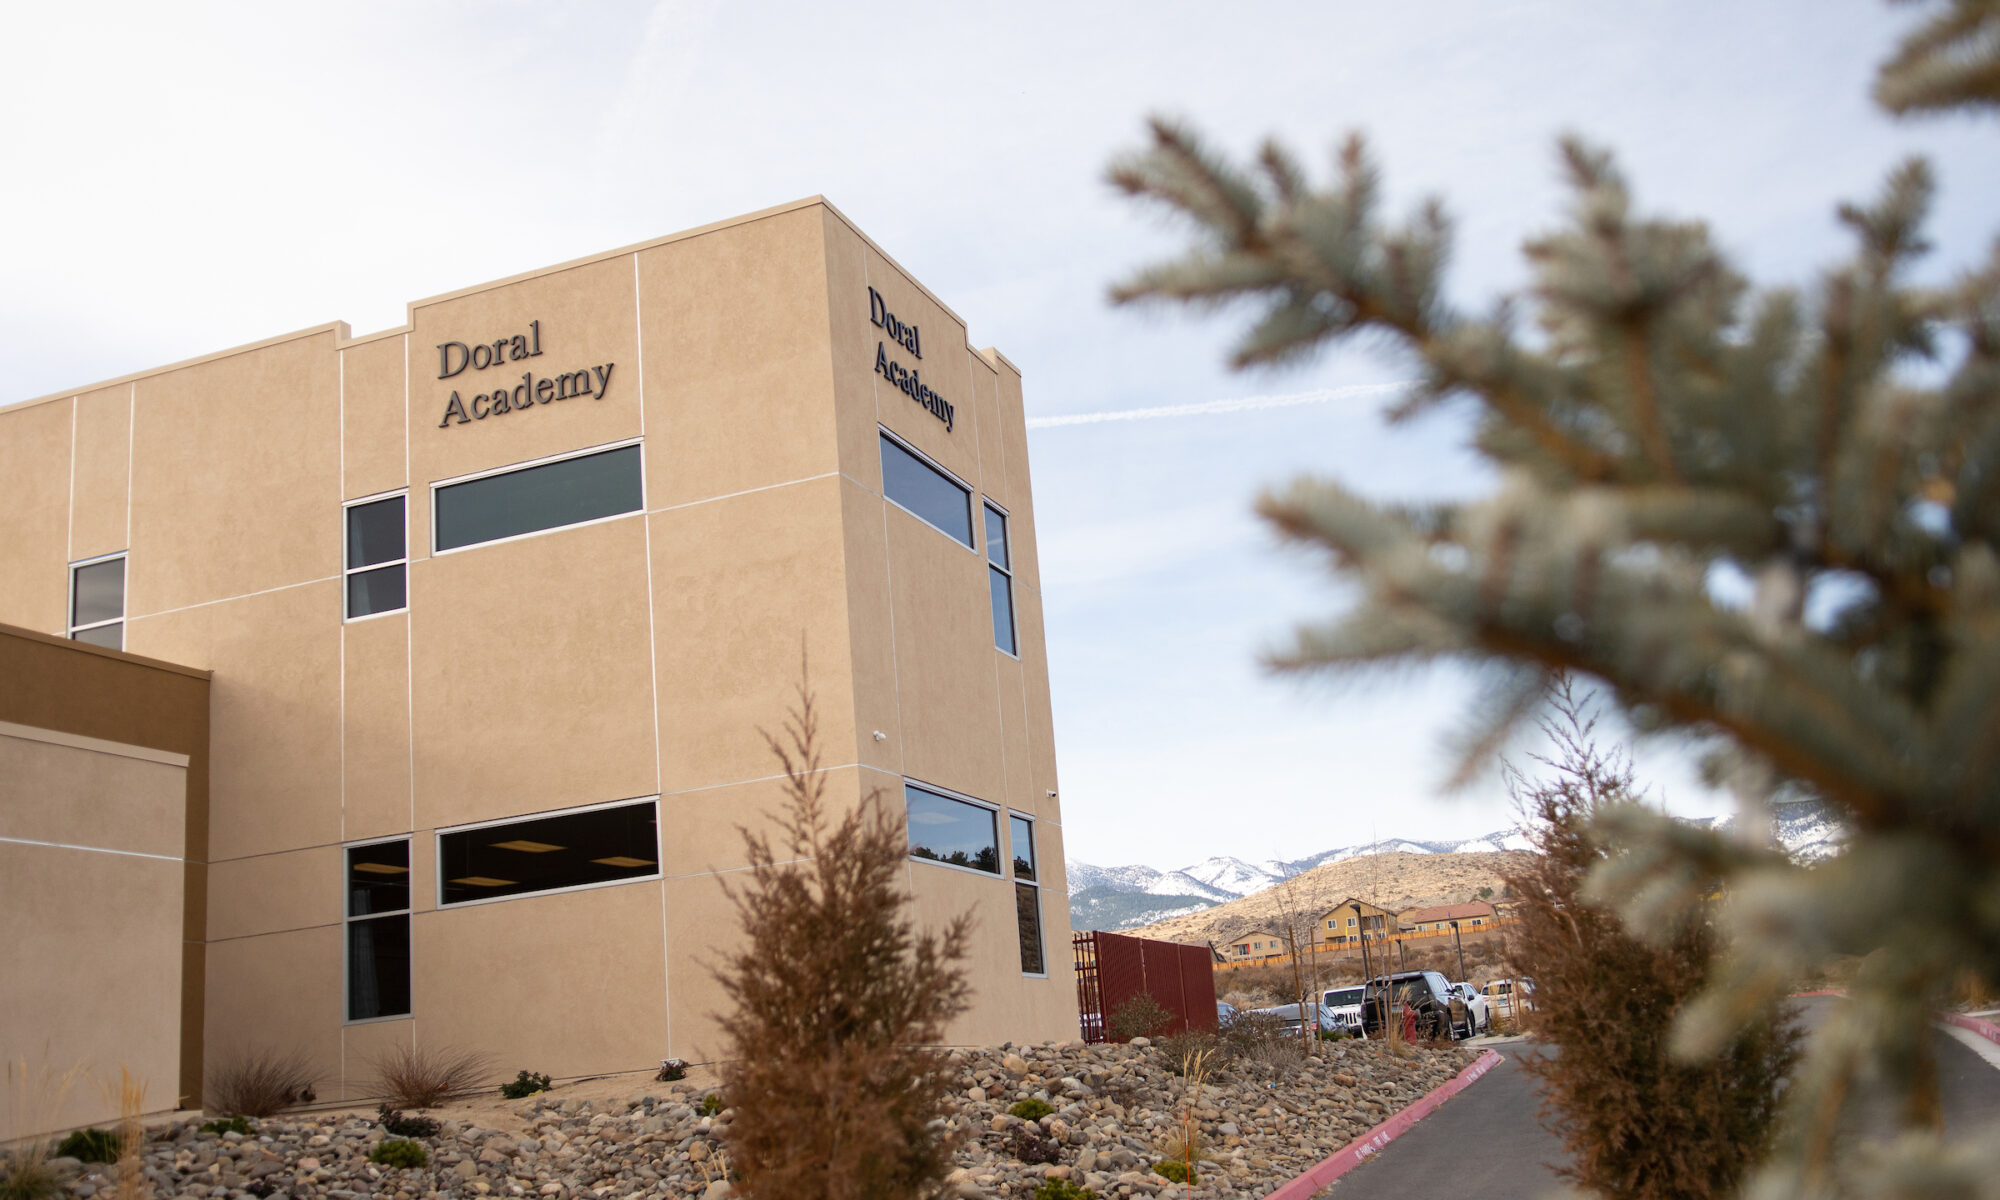 The Doral Academy of Northern Nevada building